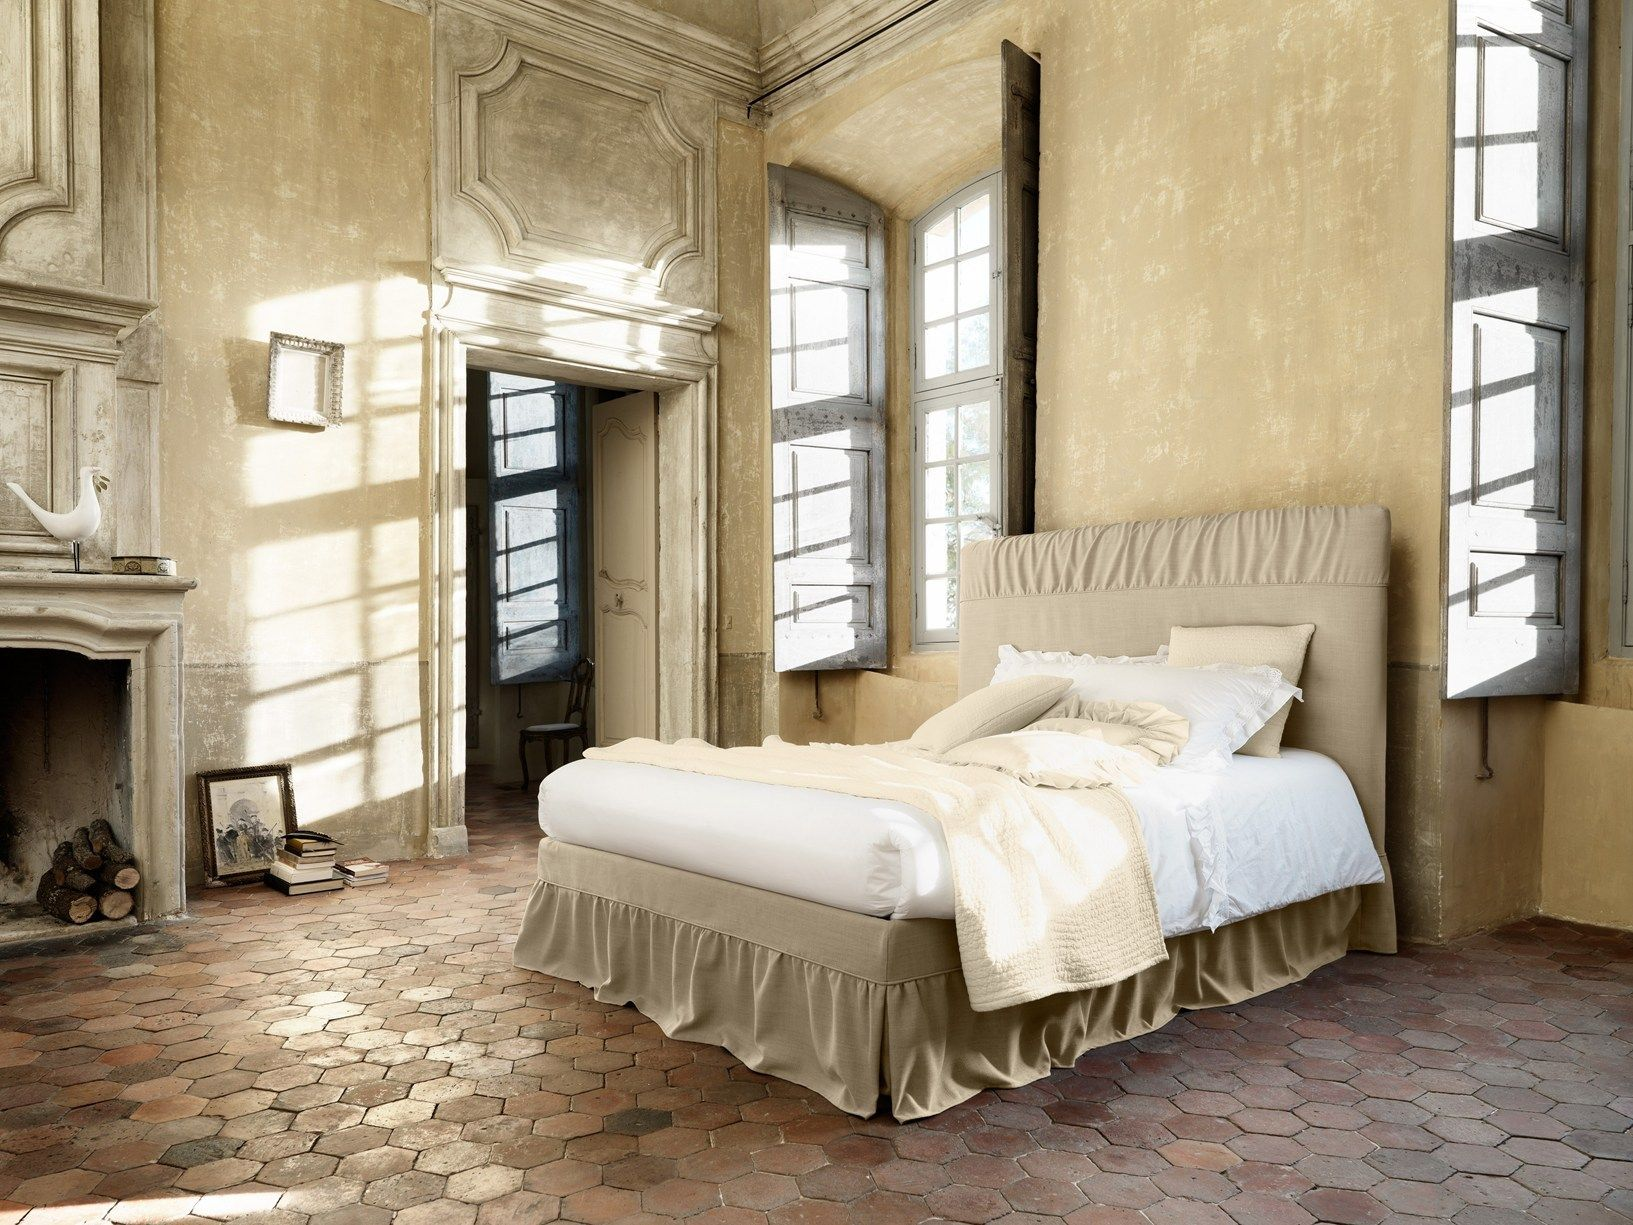 Charme francese per letti shabby chic - Camere country chic ...